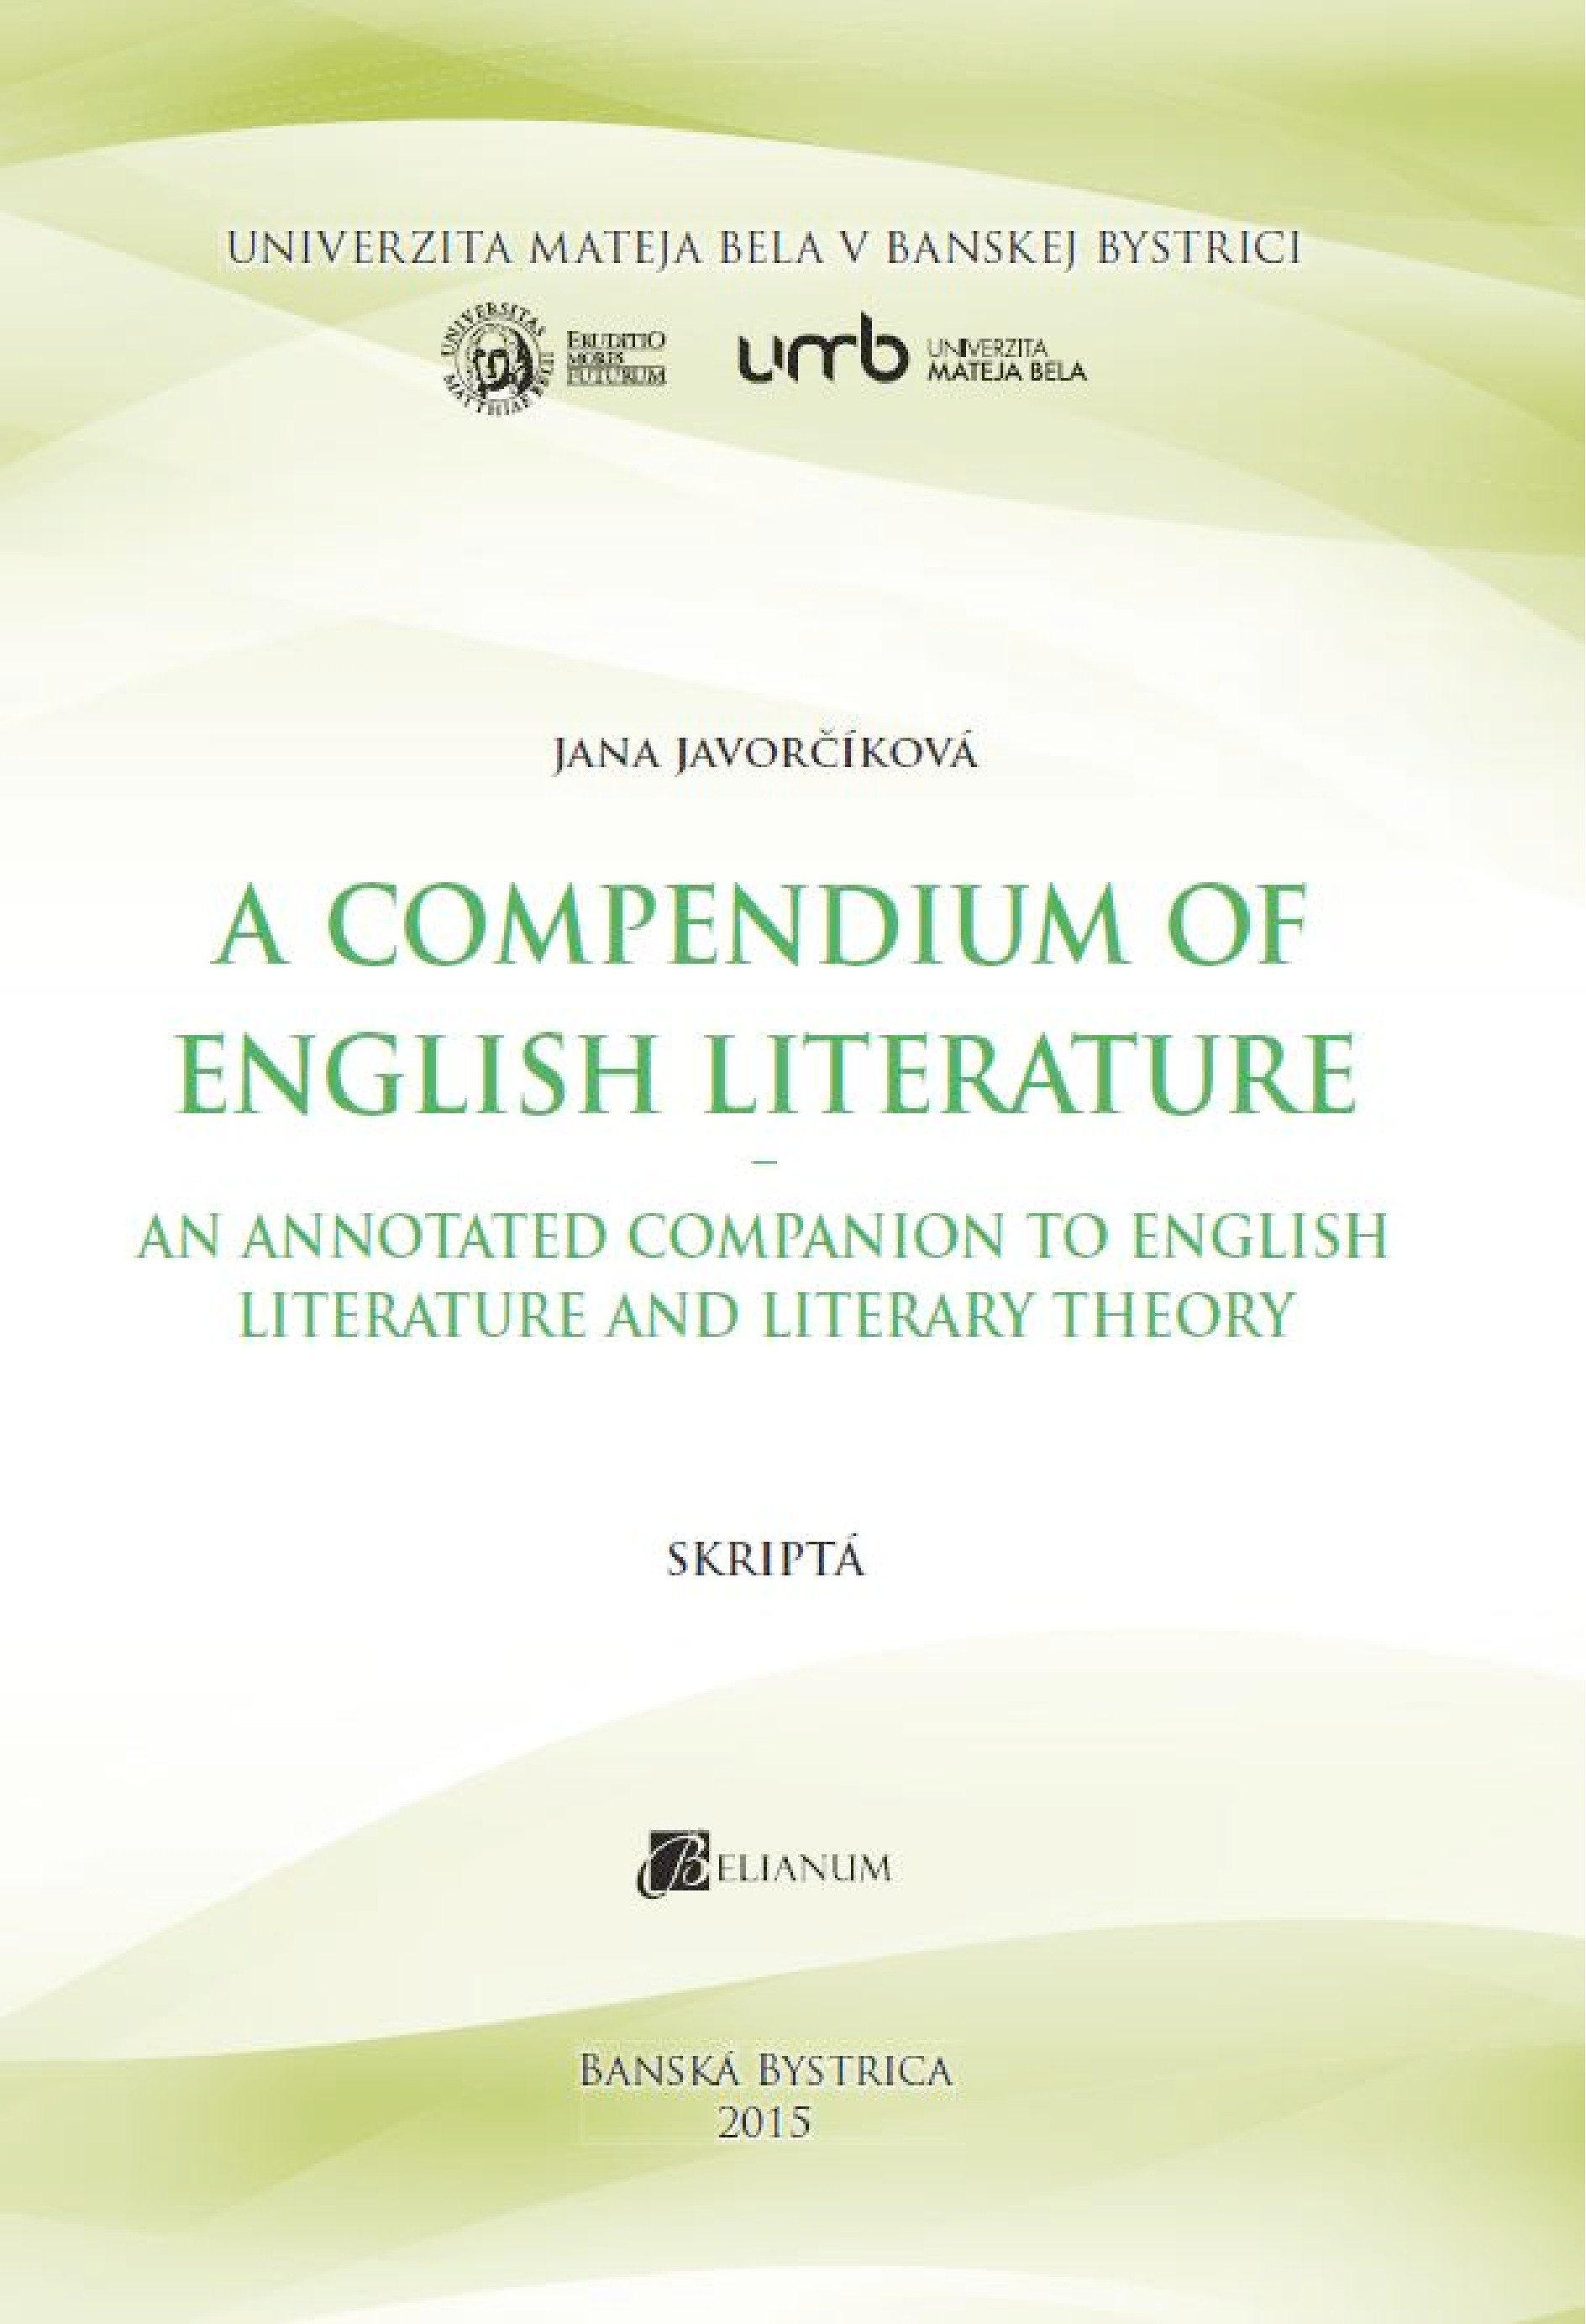 A Compendium of English Literature - An Annotated Companion to English Literature and Literary Theory